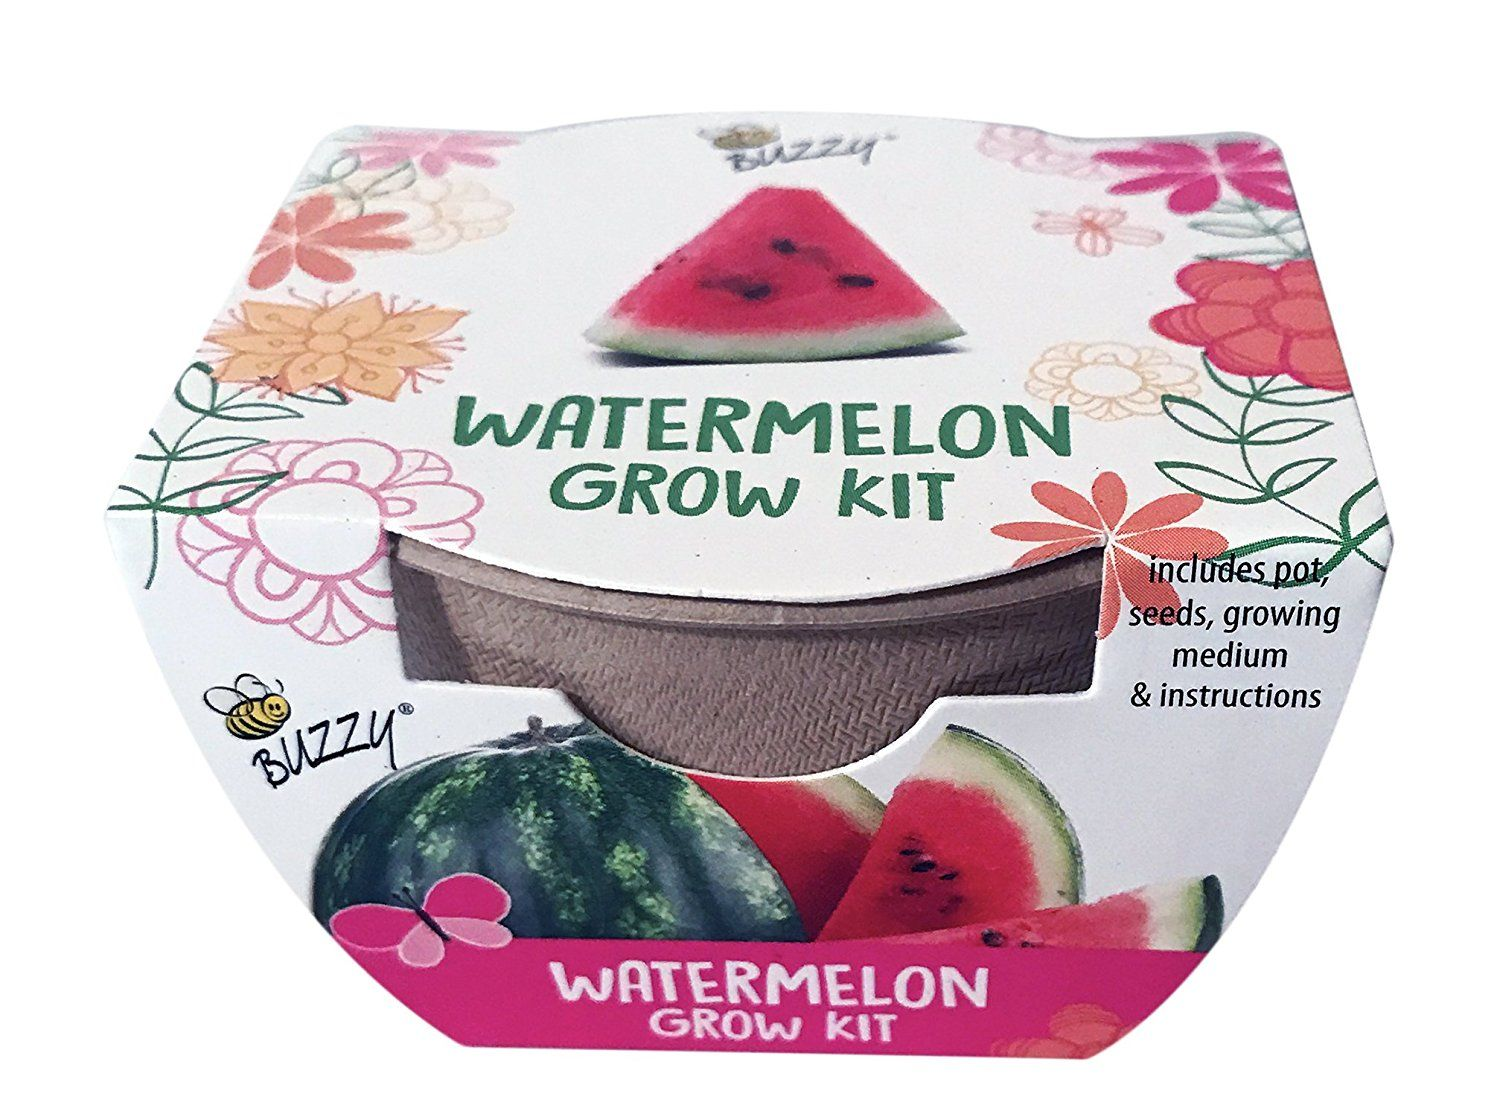 Amazon Com Watermelon Grow Kit Includes Pot Seeds Growing Medium And Instructions Perfect Addition To Any Garden Patio Lawn Garden